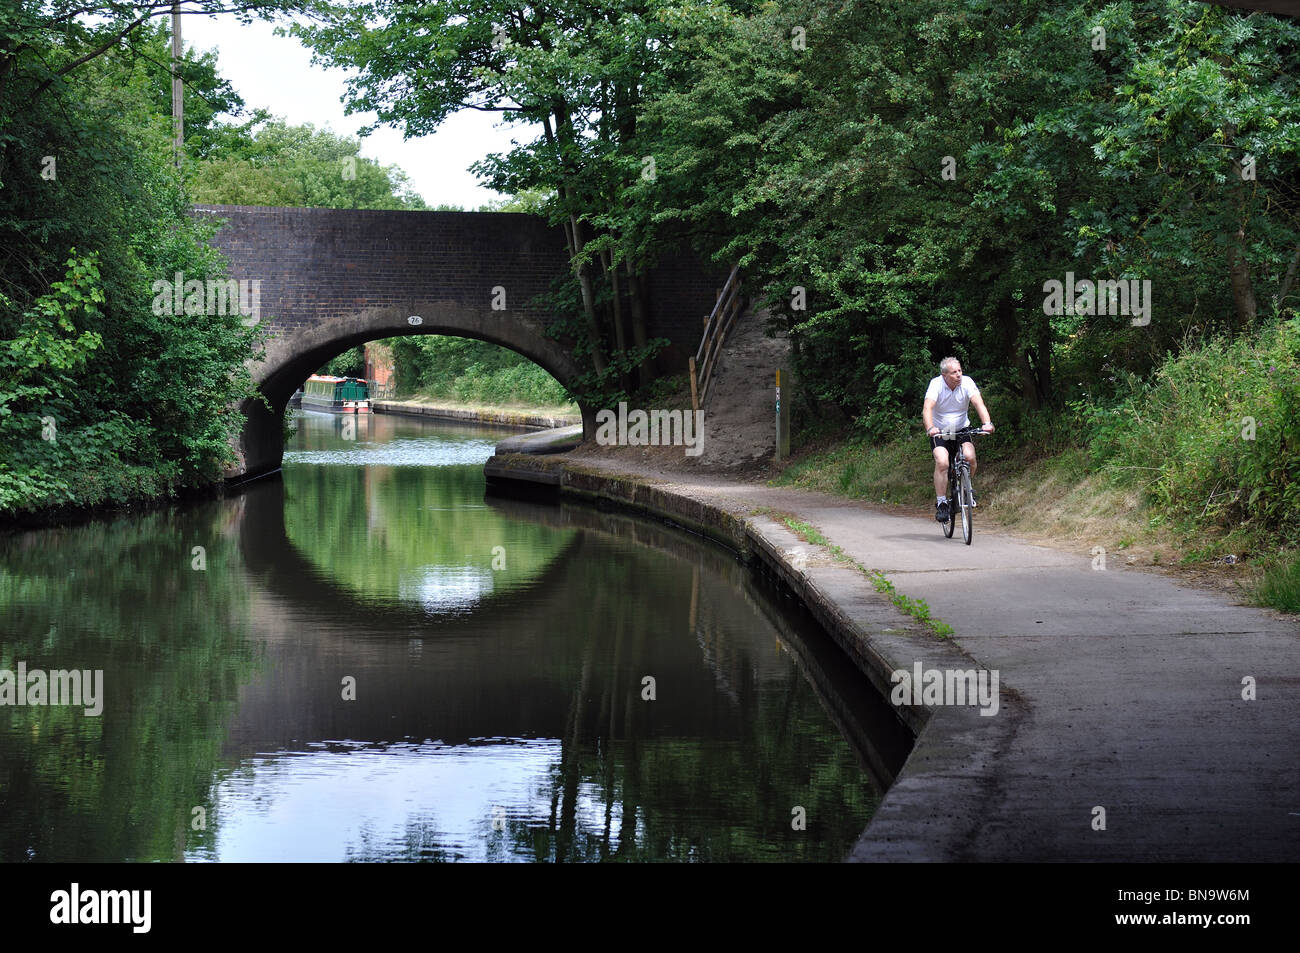 Cyclist on Grand Union Canal towpath, Copt Heath, West Midlands, England, UK - Stock Image